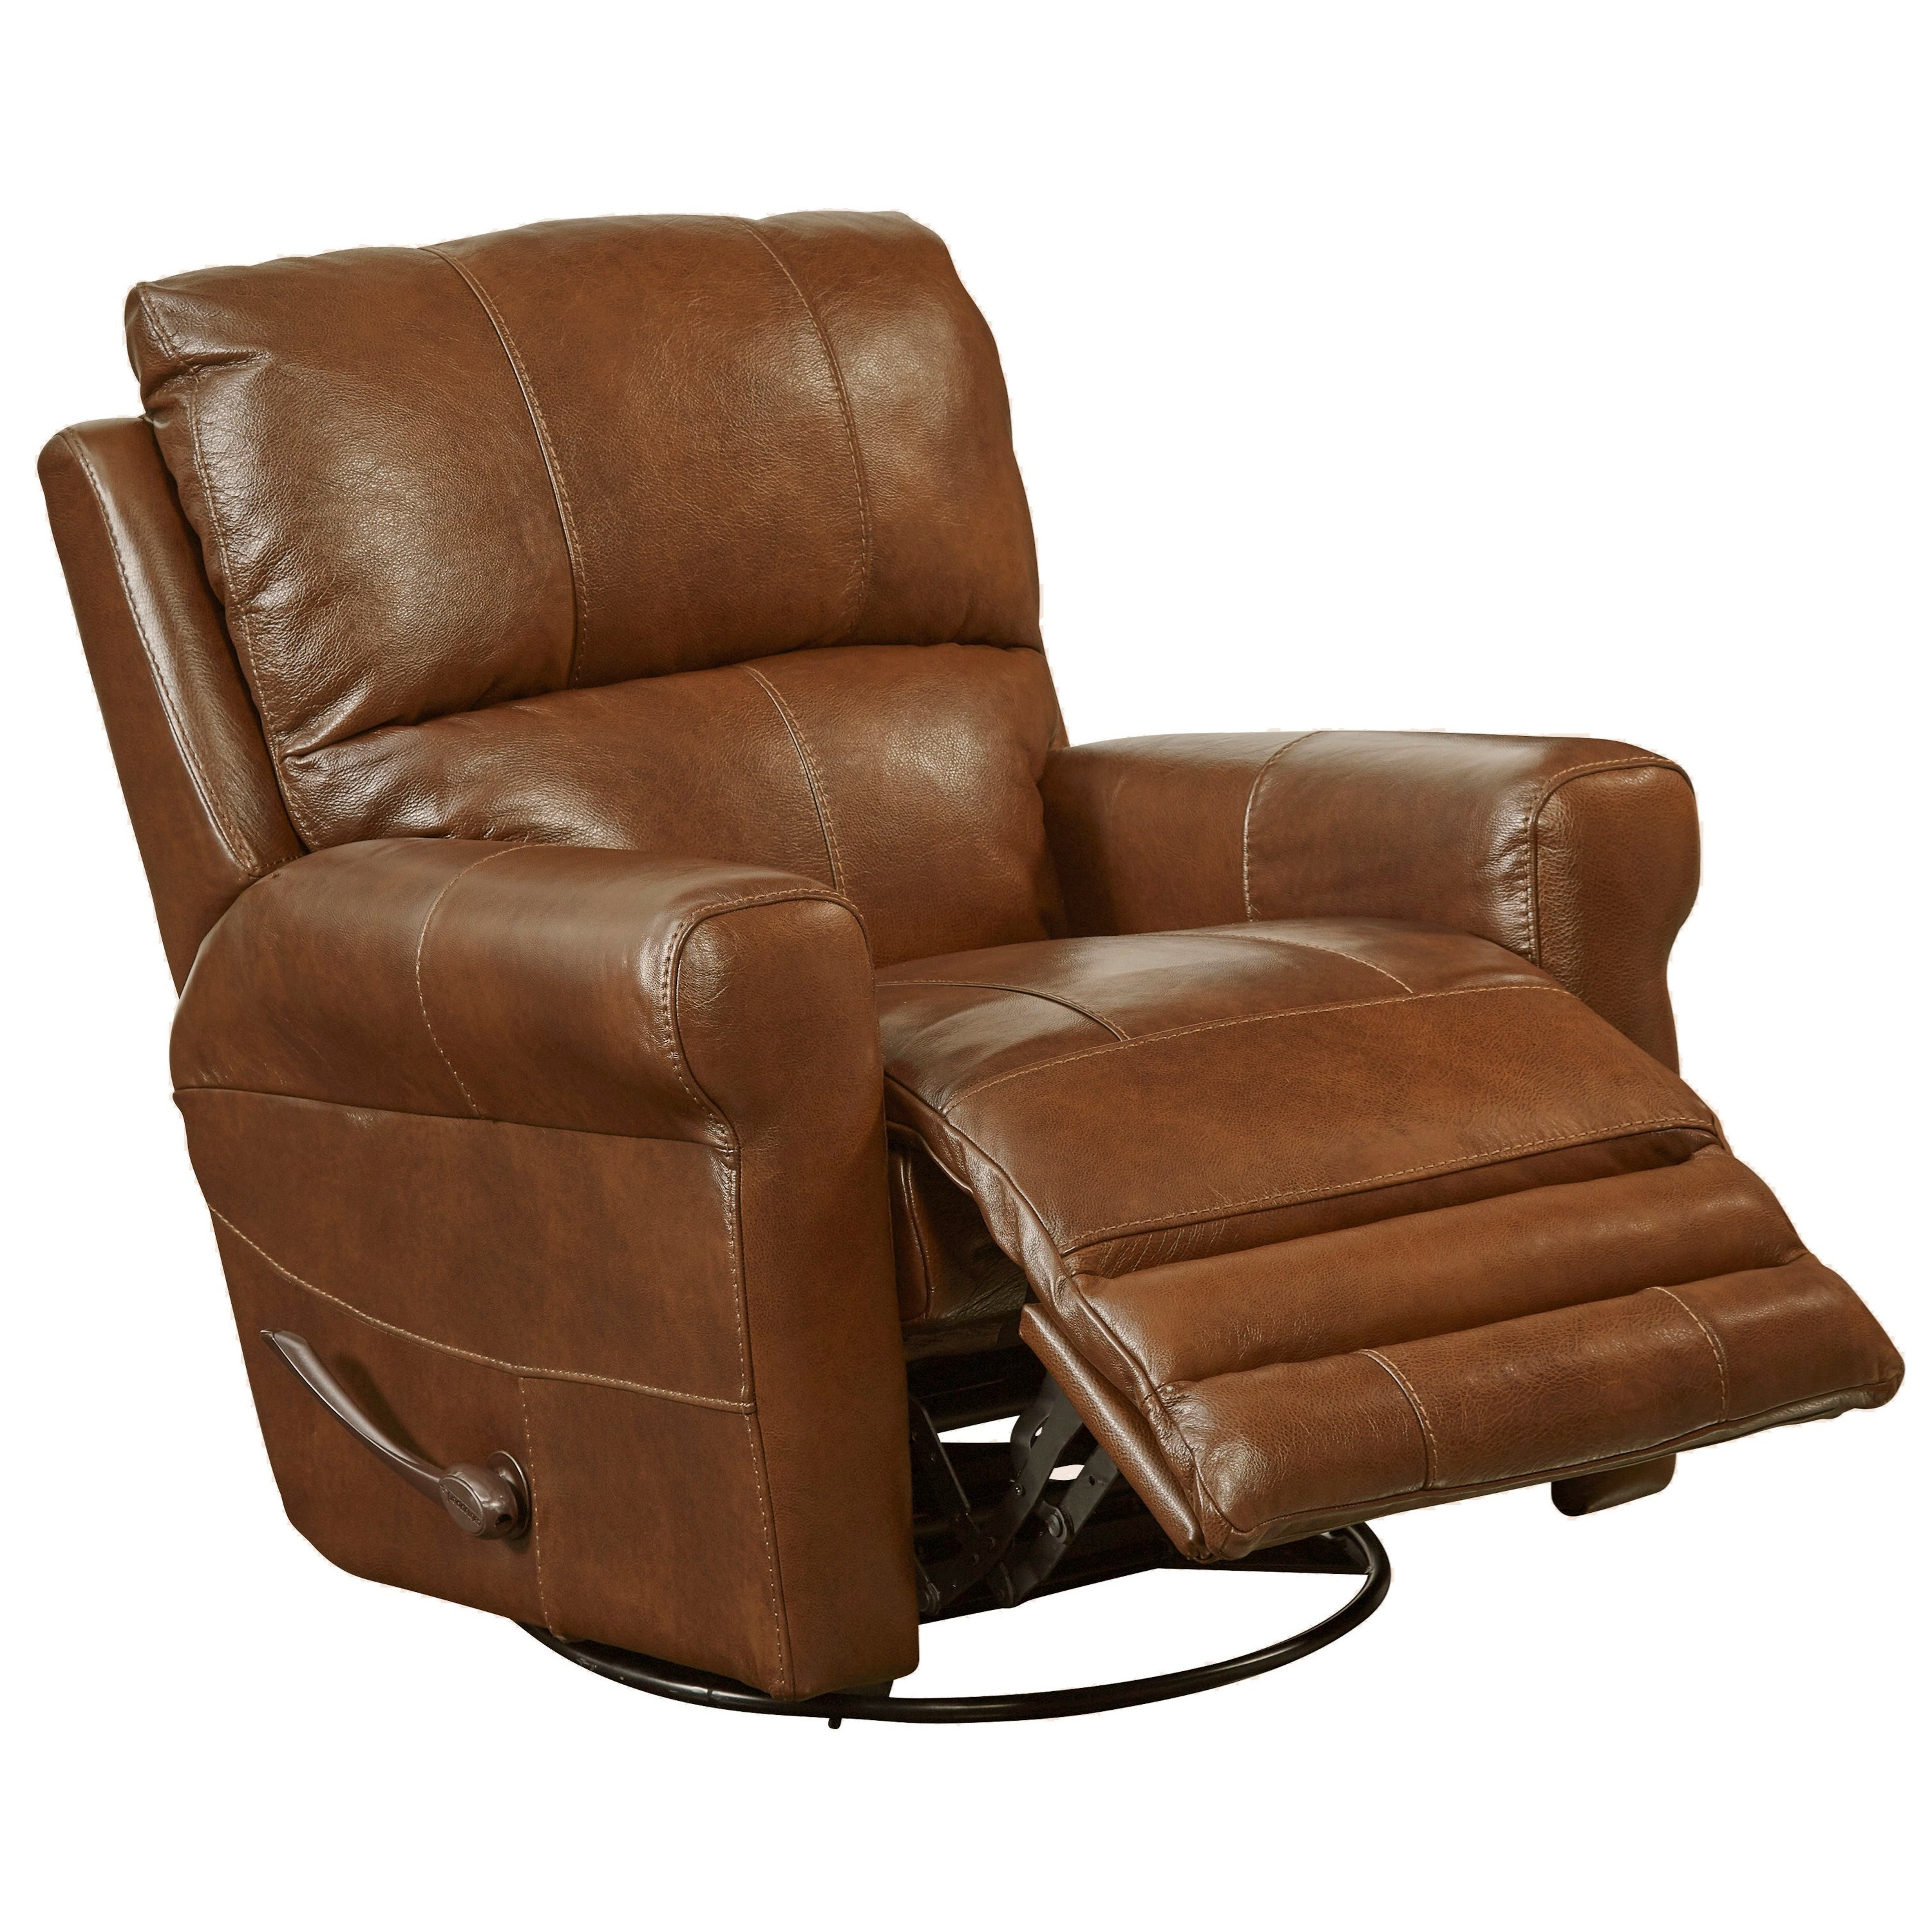 Catnapper Chair Catnapper Motion Chairs And Recliners Hoffner Swivel